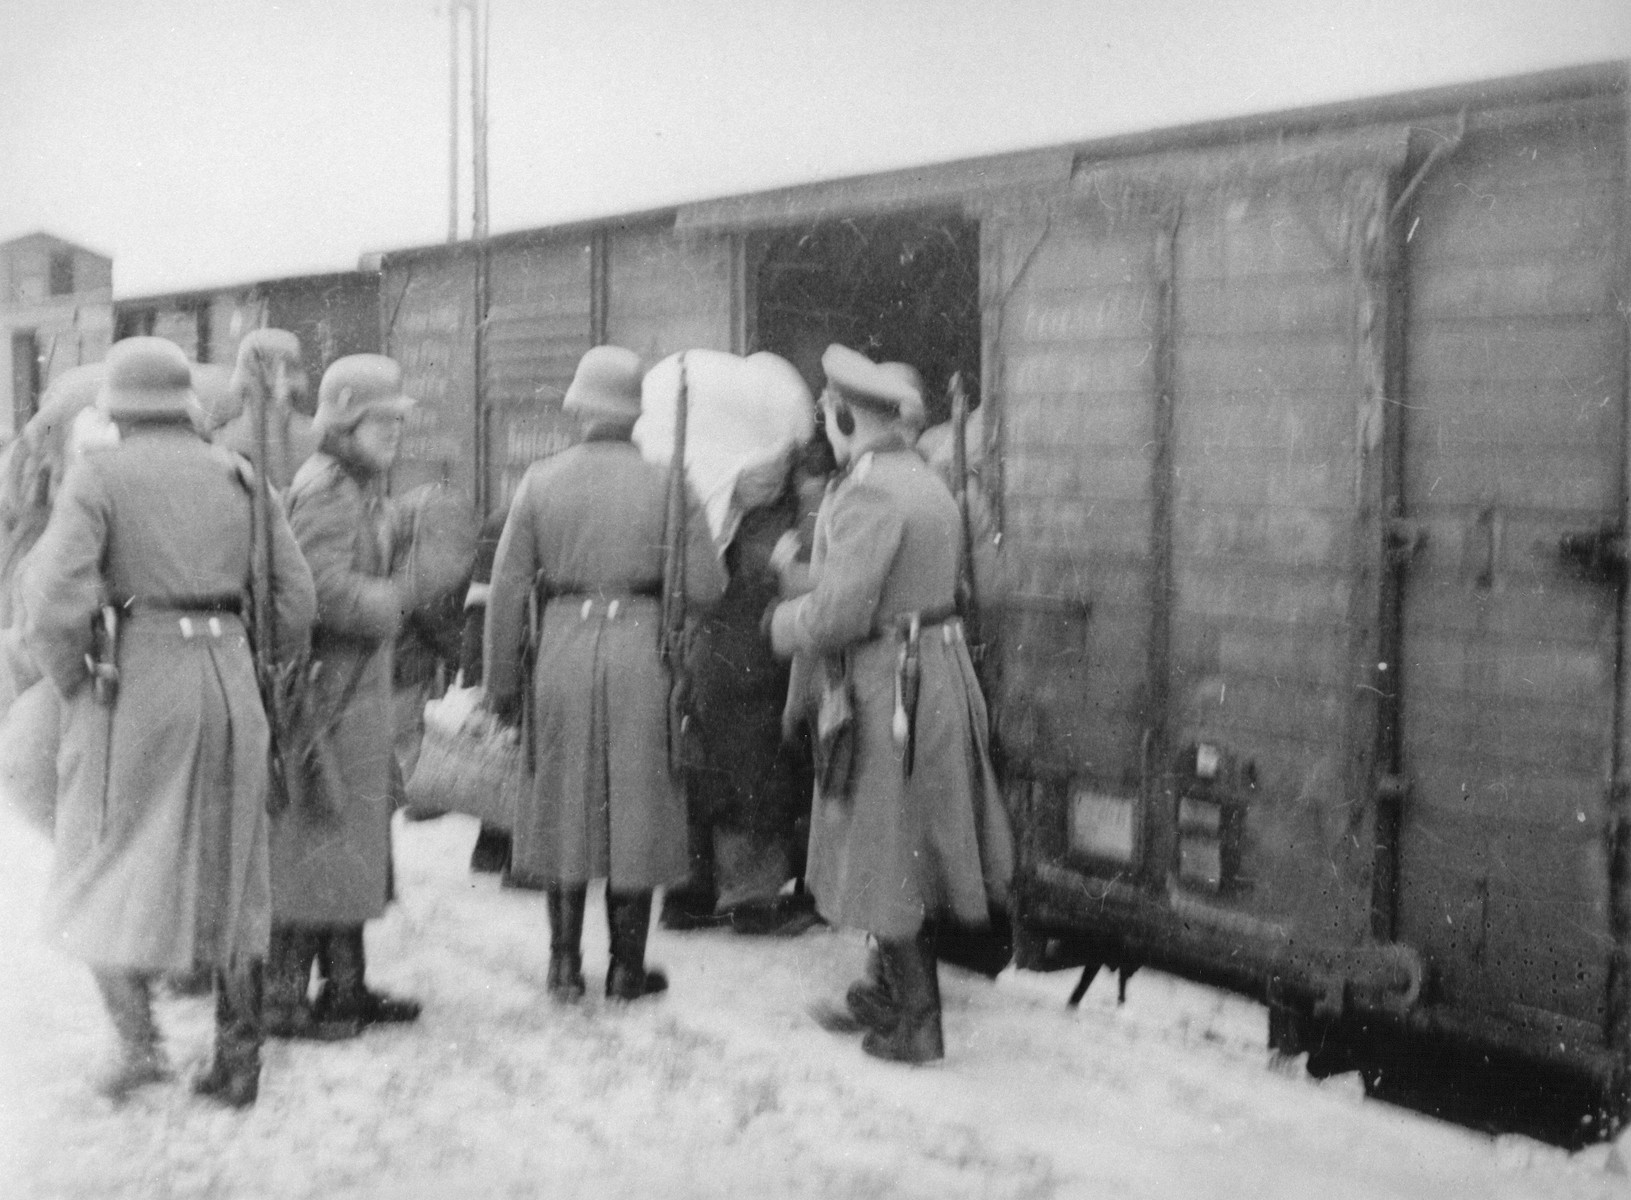 German soldiers oversee the boarding of Jews from the Zyradow ghetto onto a deportation train.